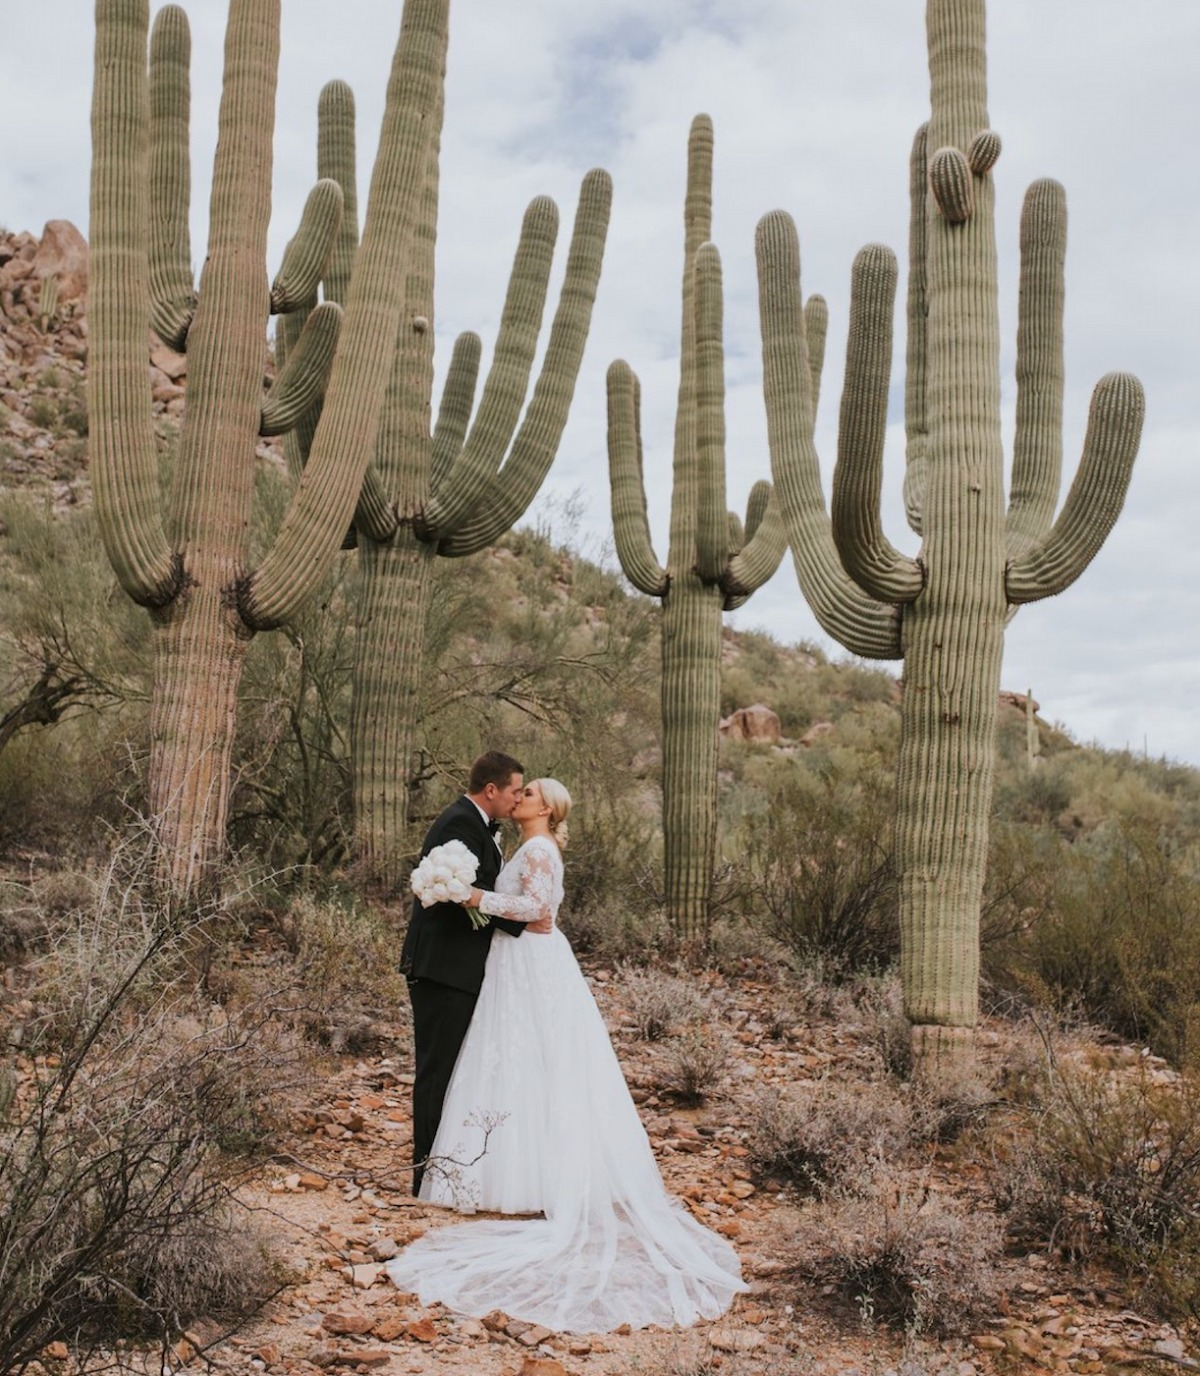 Ritzy Black and White Wedding at Ritz-Carlton in Arizona